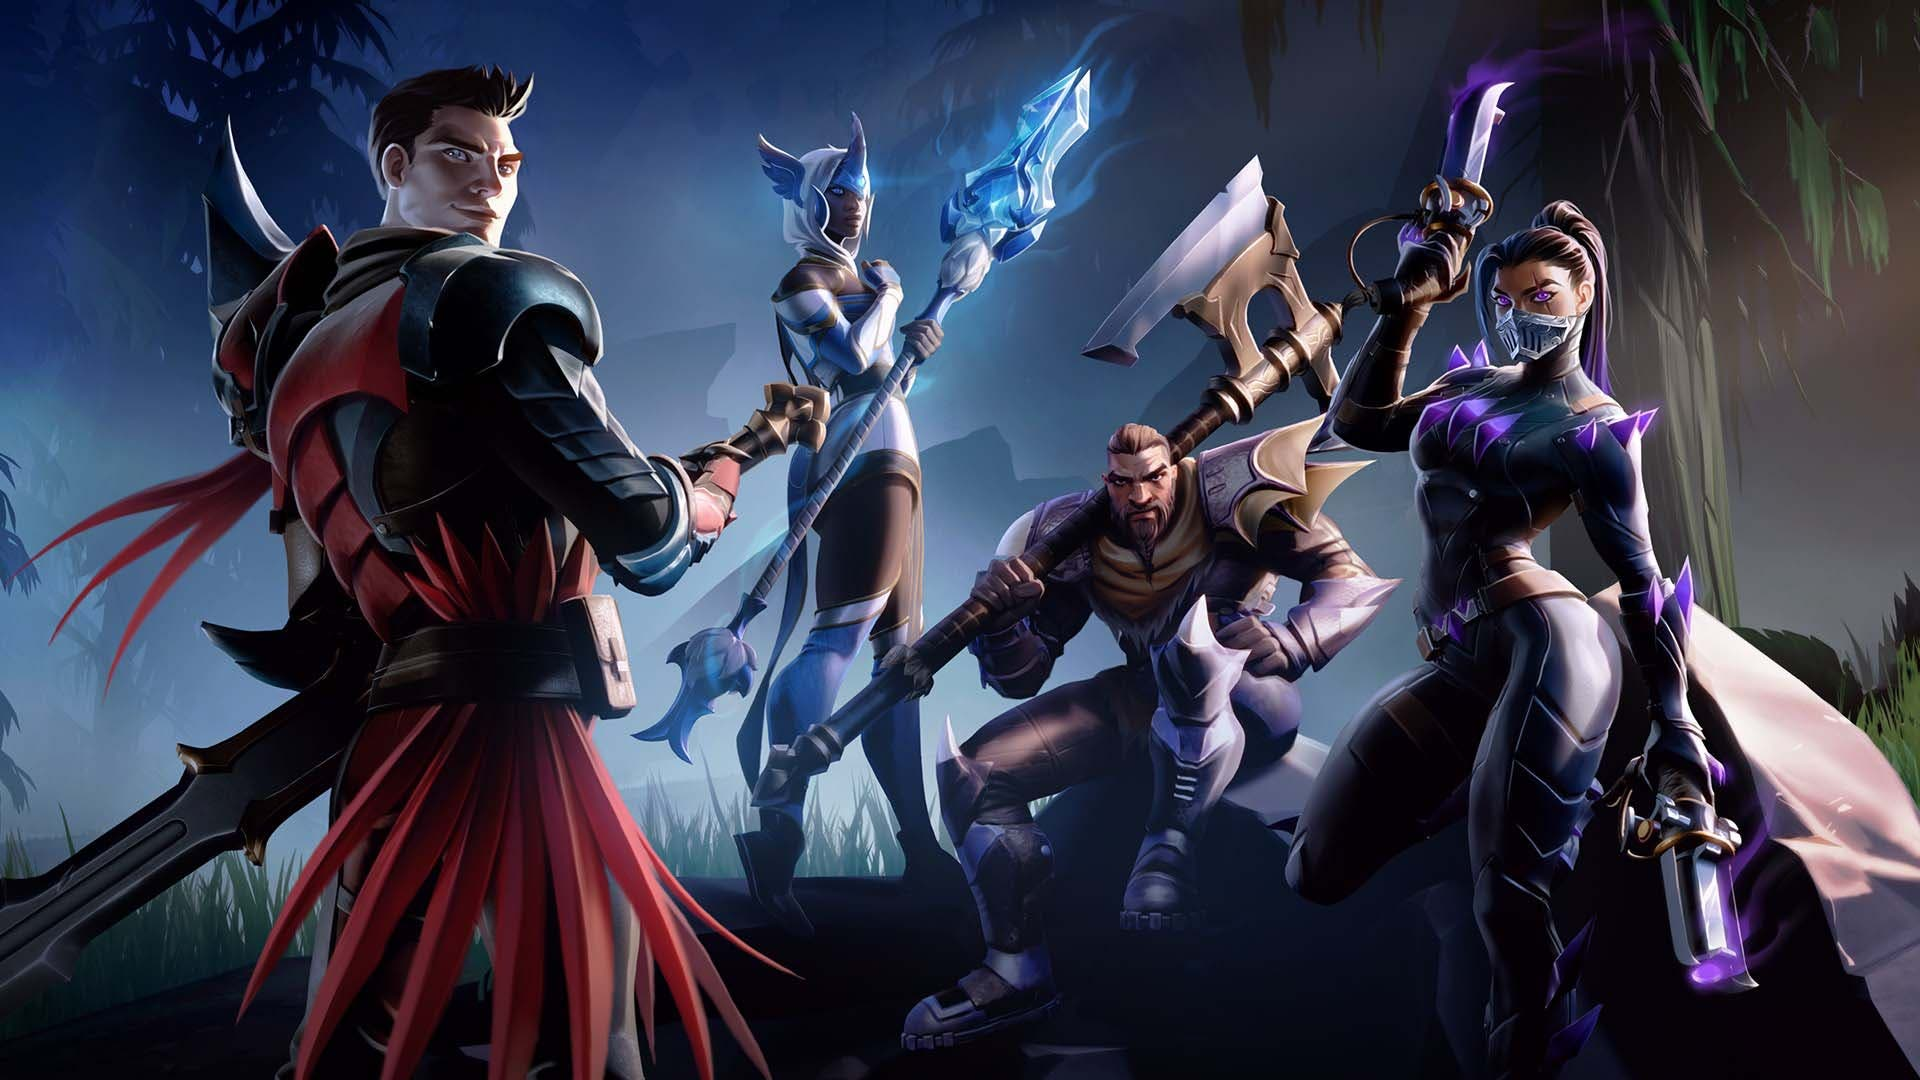 El cross-play de Dauntless entre Switch y Xbox One ya está disponible 11